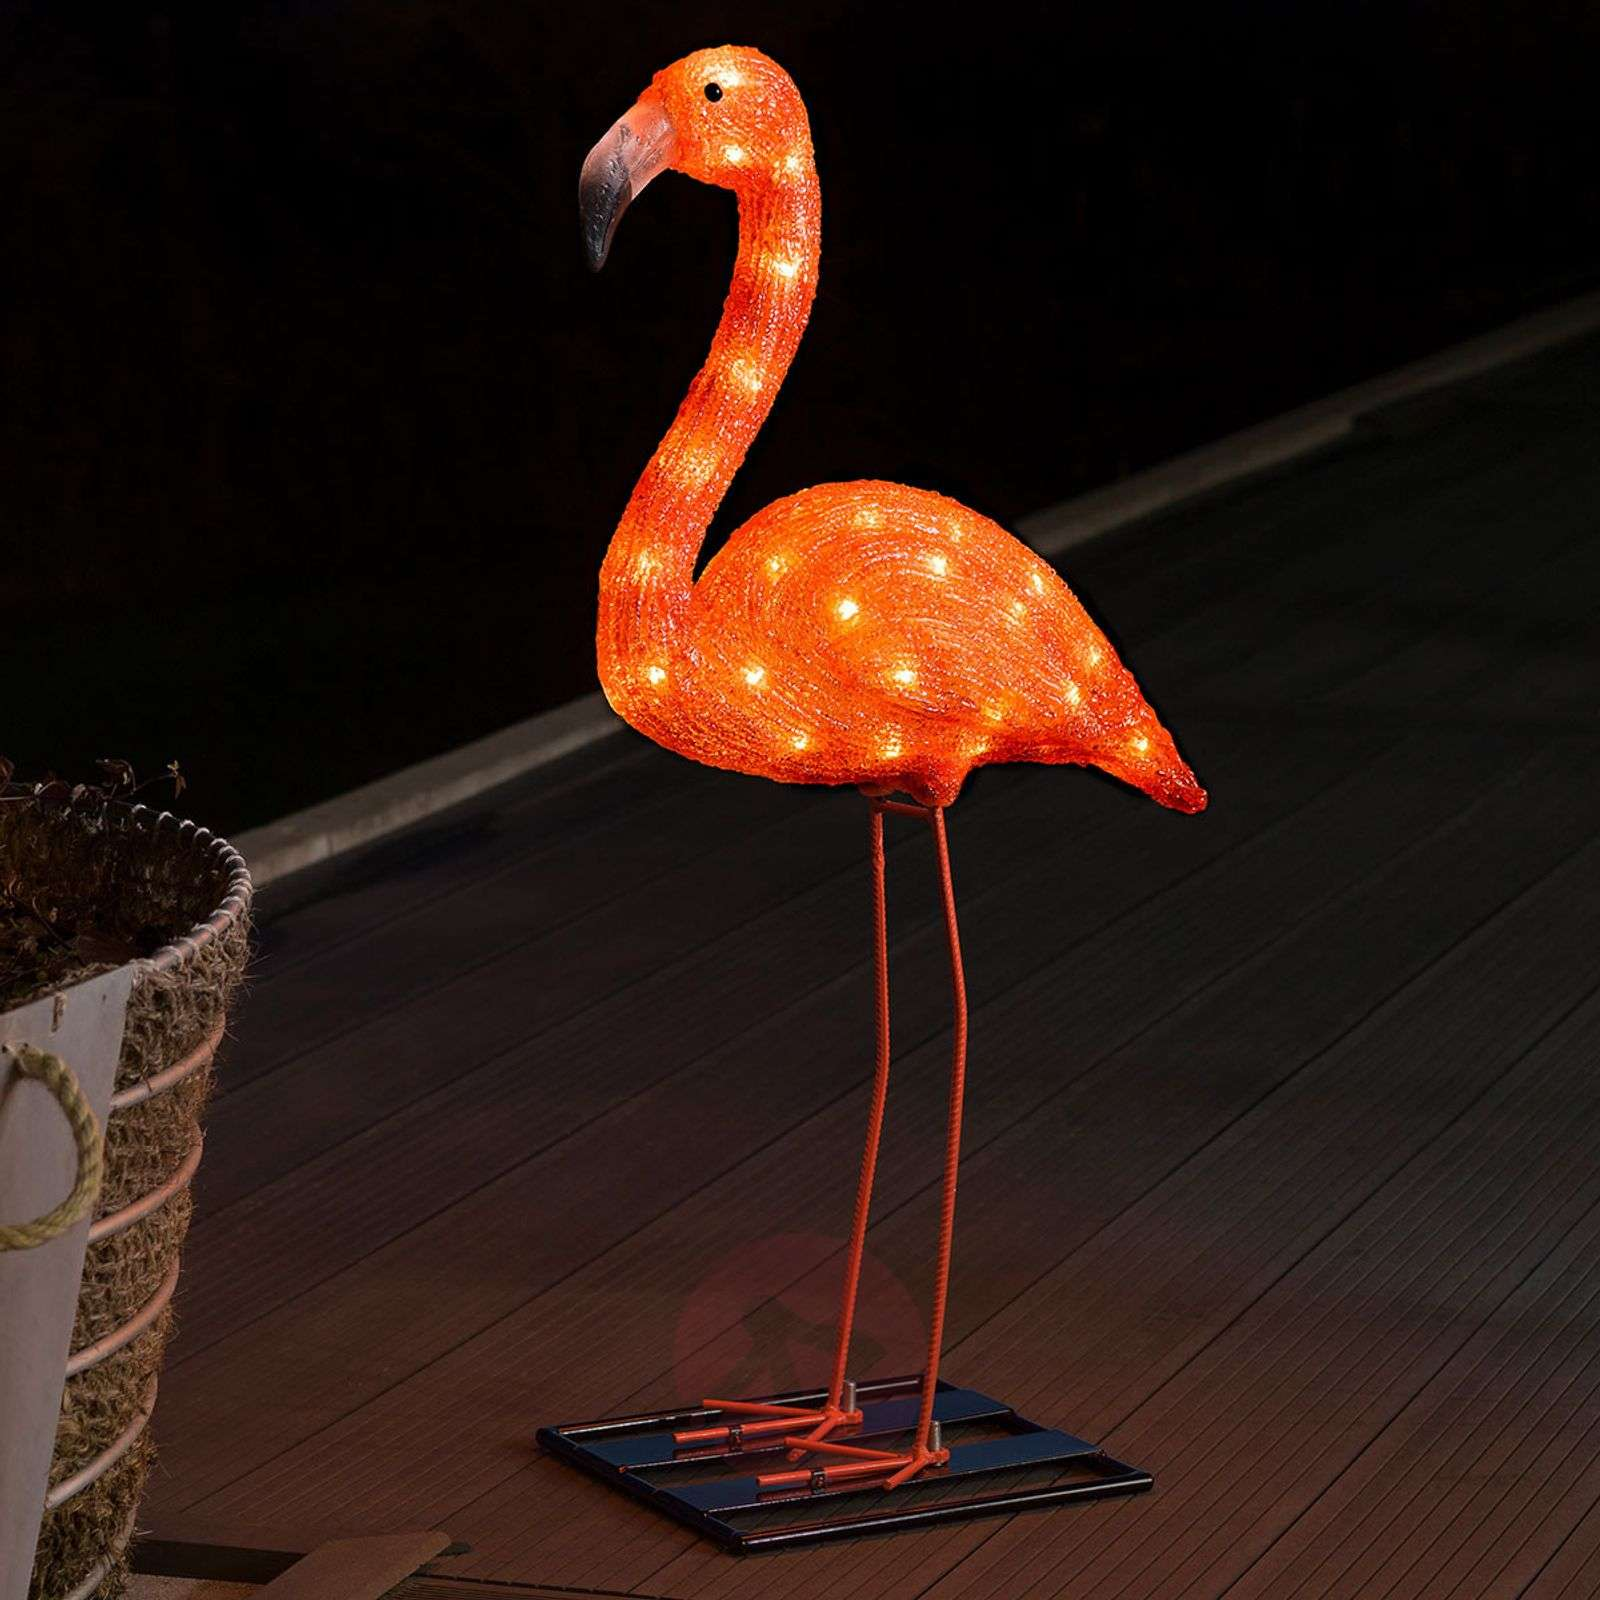 LED-koristevalaisin Flamingo-5524874X-01